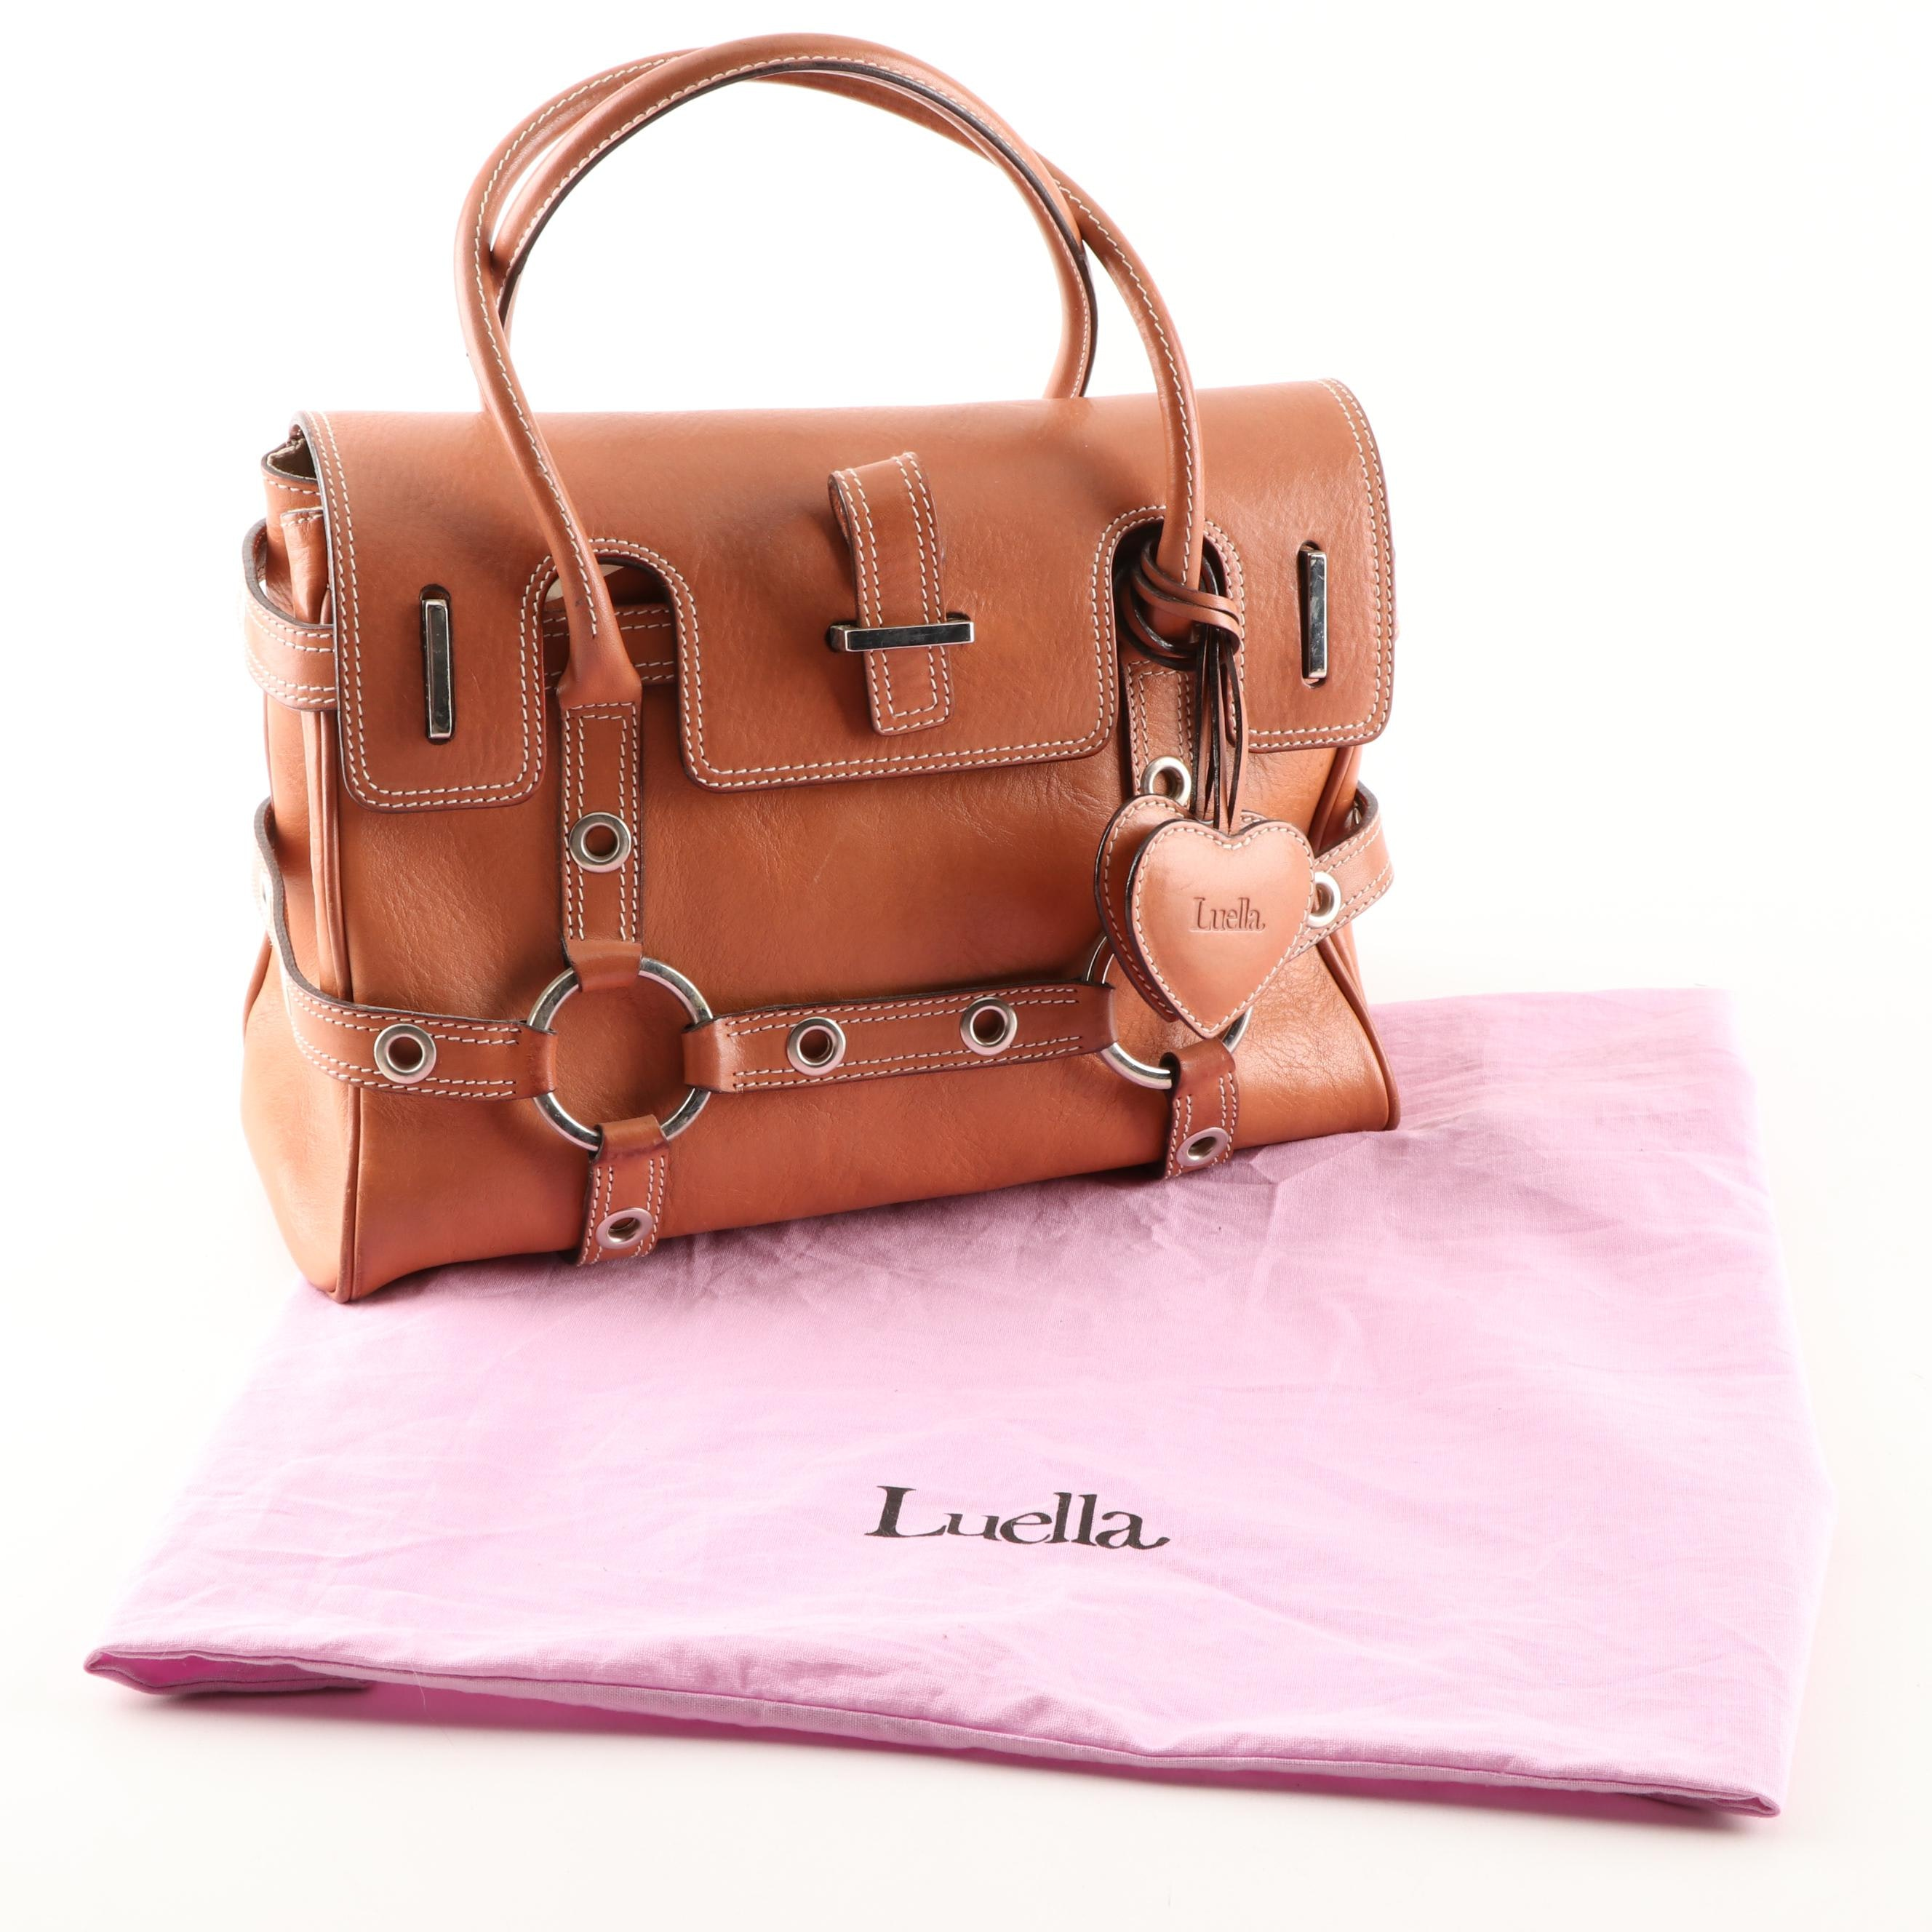 Luella Cognac Leather Satchel with Contrast Stitching